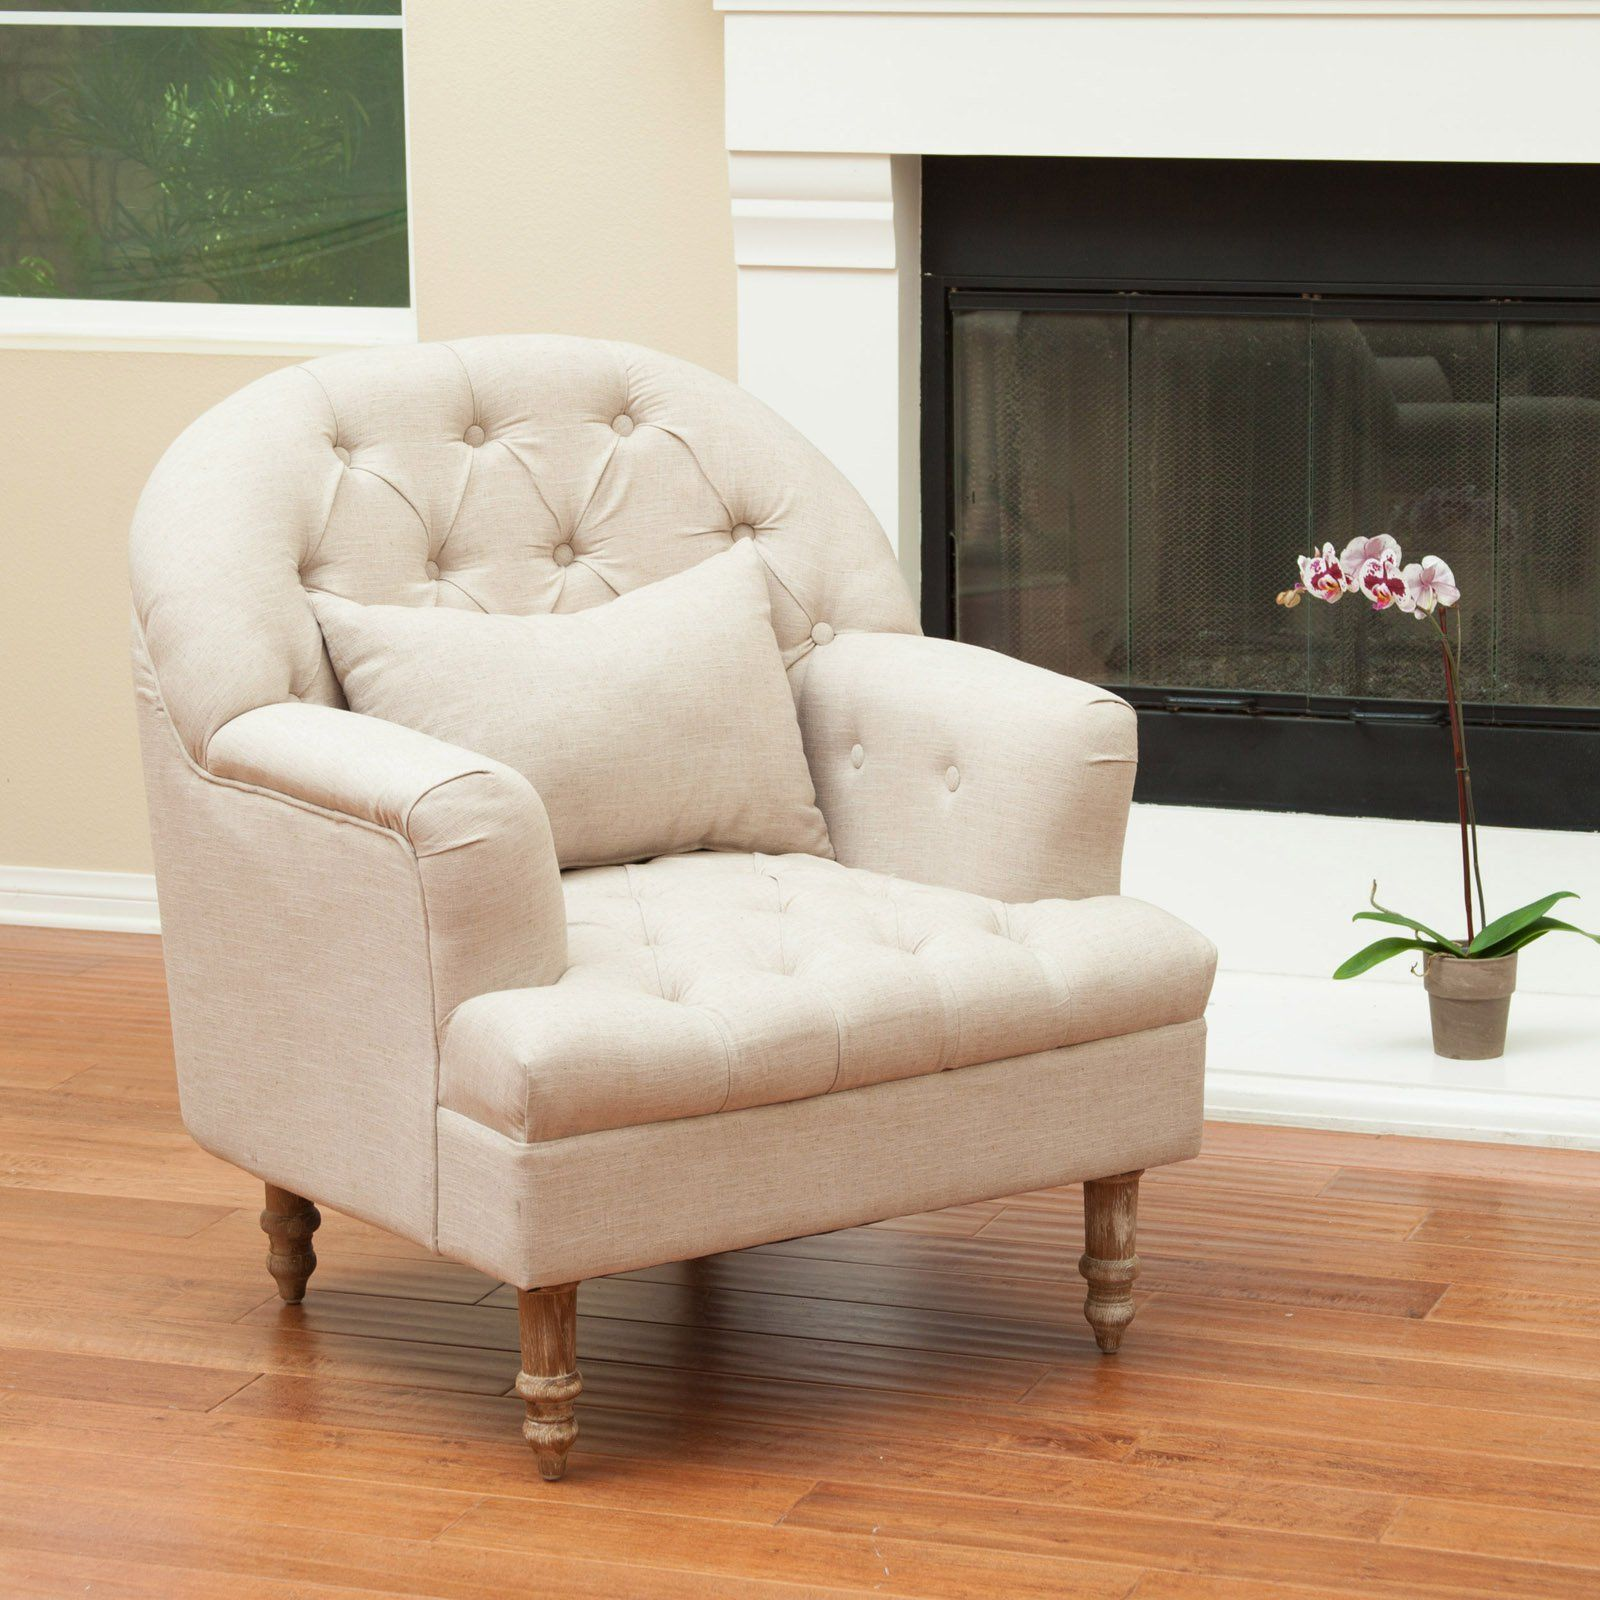 Best Selling Home Decor Furniture Bryce Tufted Chair - Sand - The ...